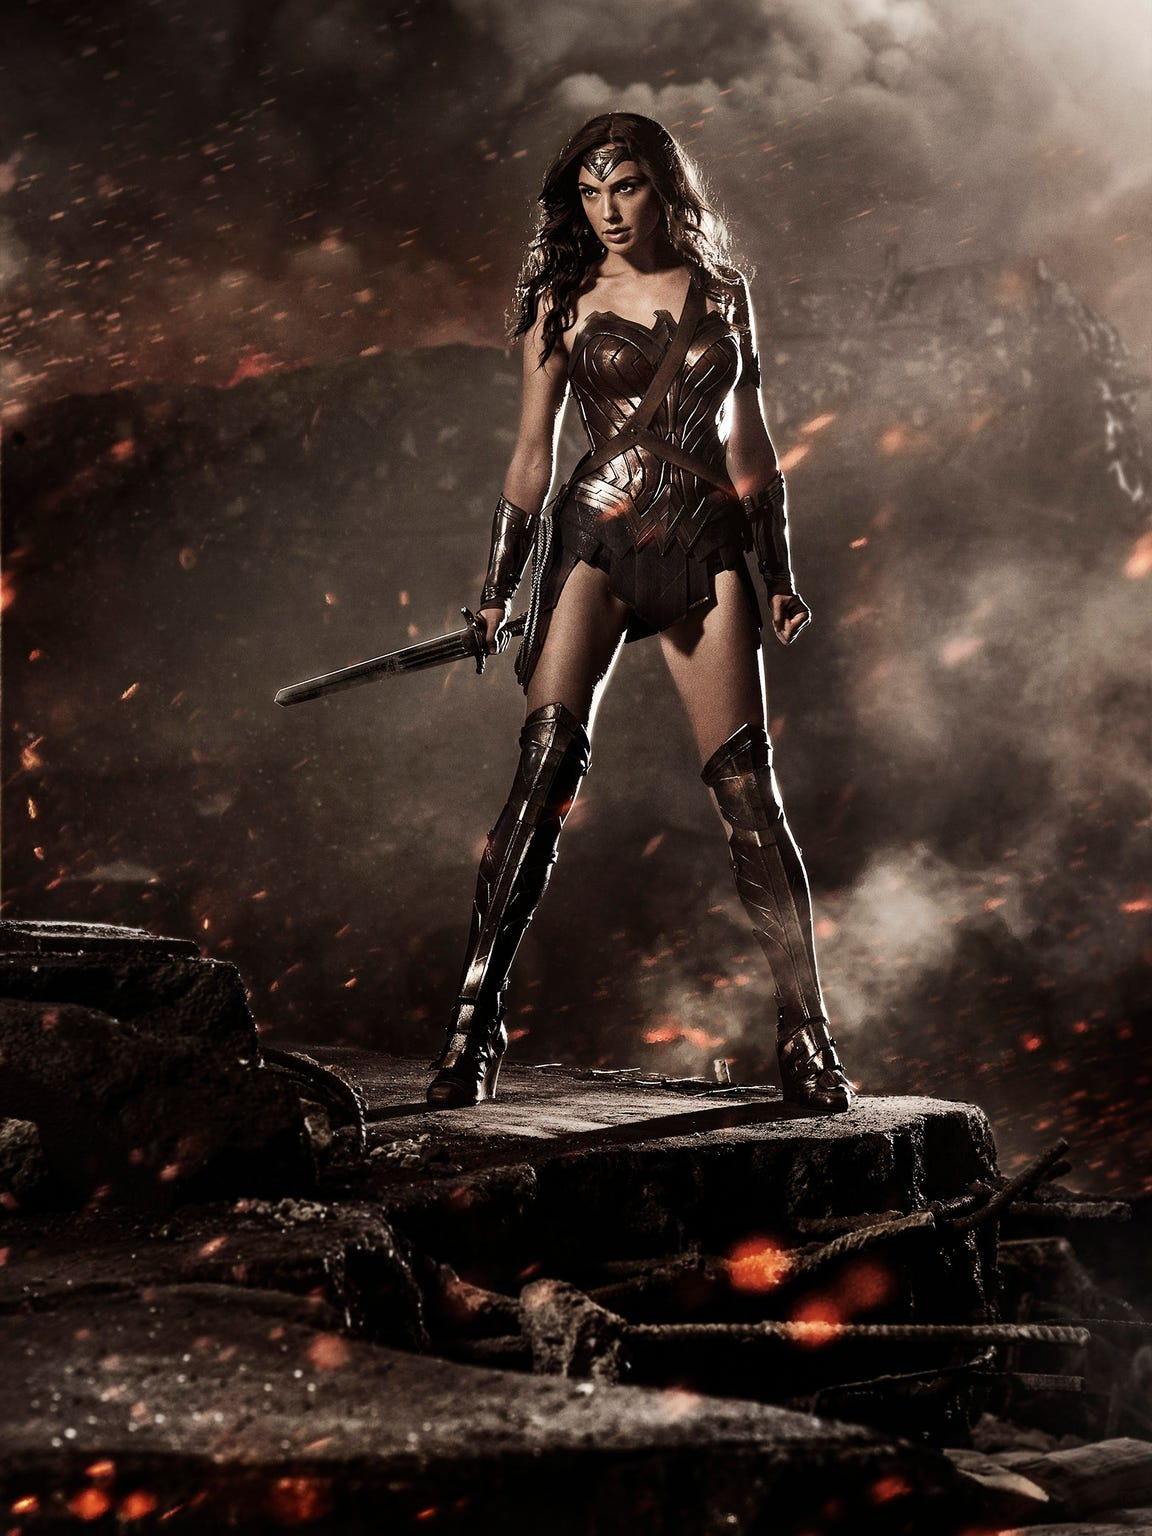 Gal Gadot as Wonder Woman in 'Batman v Superman: Dawn of Justice' is one of the most anticipated comic book characters debuting in a major role for 2016. Check out a list of the most anticipated movies of 2016 at elpasotimes.com.